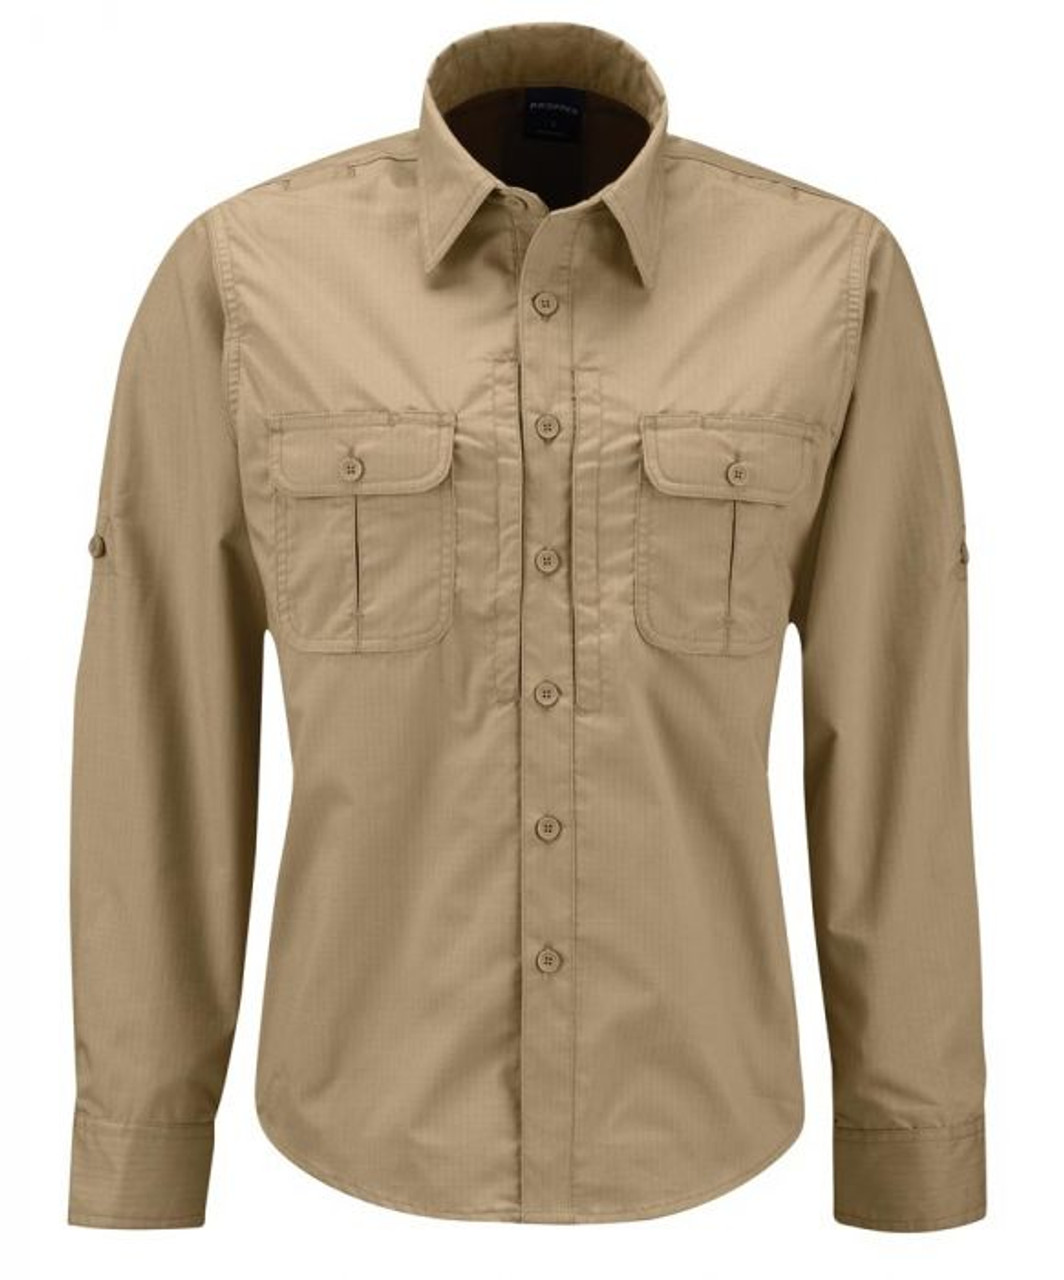 Propper F5399 Women's Kinetic® Tactical Button-Down Shirt, Long Sleeve, 79% Polyester 21% Cotton ripstop NEXStretch® fabric w/DWR, 2 Chest Pockets, Badge Tab, For Uniform or Casual use